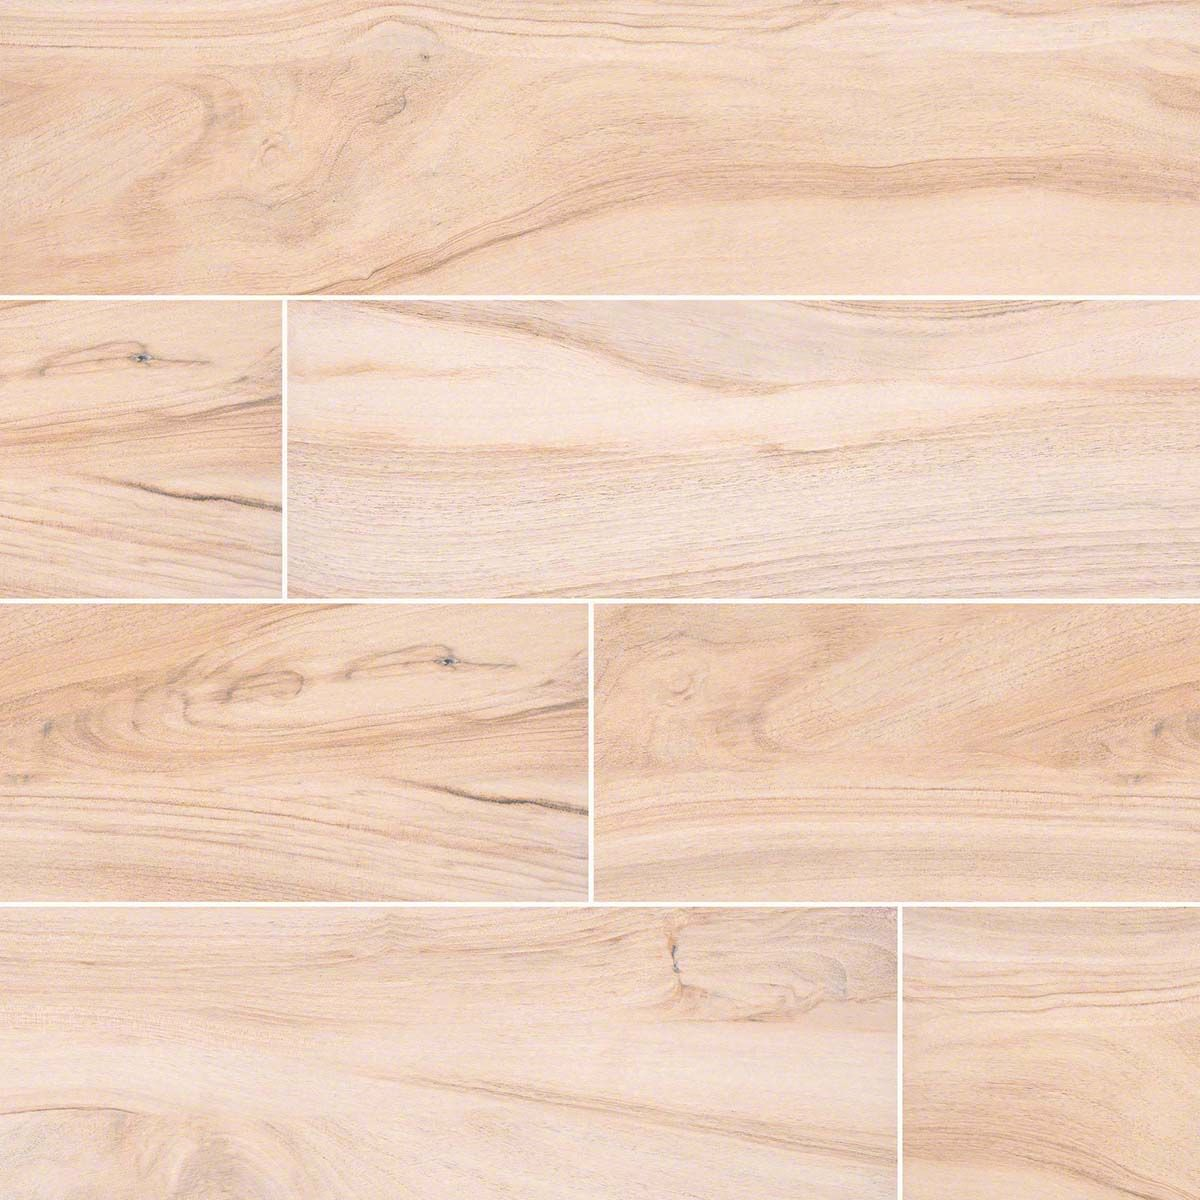 Aspenwood artic wood tile flooring countertops pinterest wood aspenwood wood tile flooring in artic from msi feature warm cream and beige tones reminiscent of fine natural hardwood crafted in durable porcelain dailygadgetfo Images